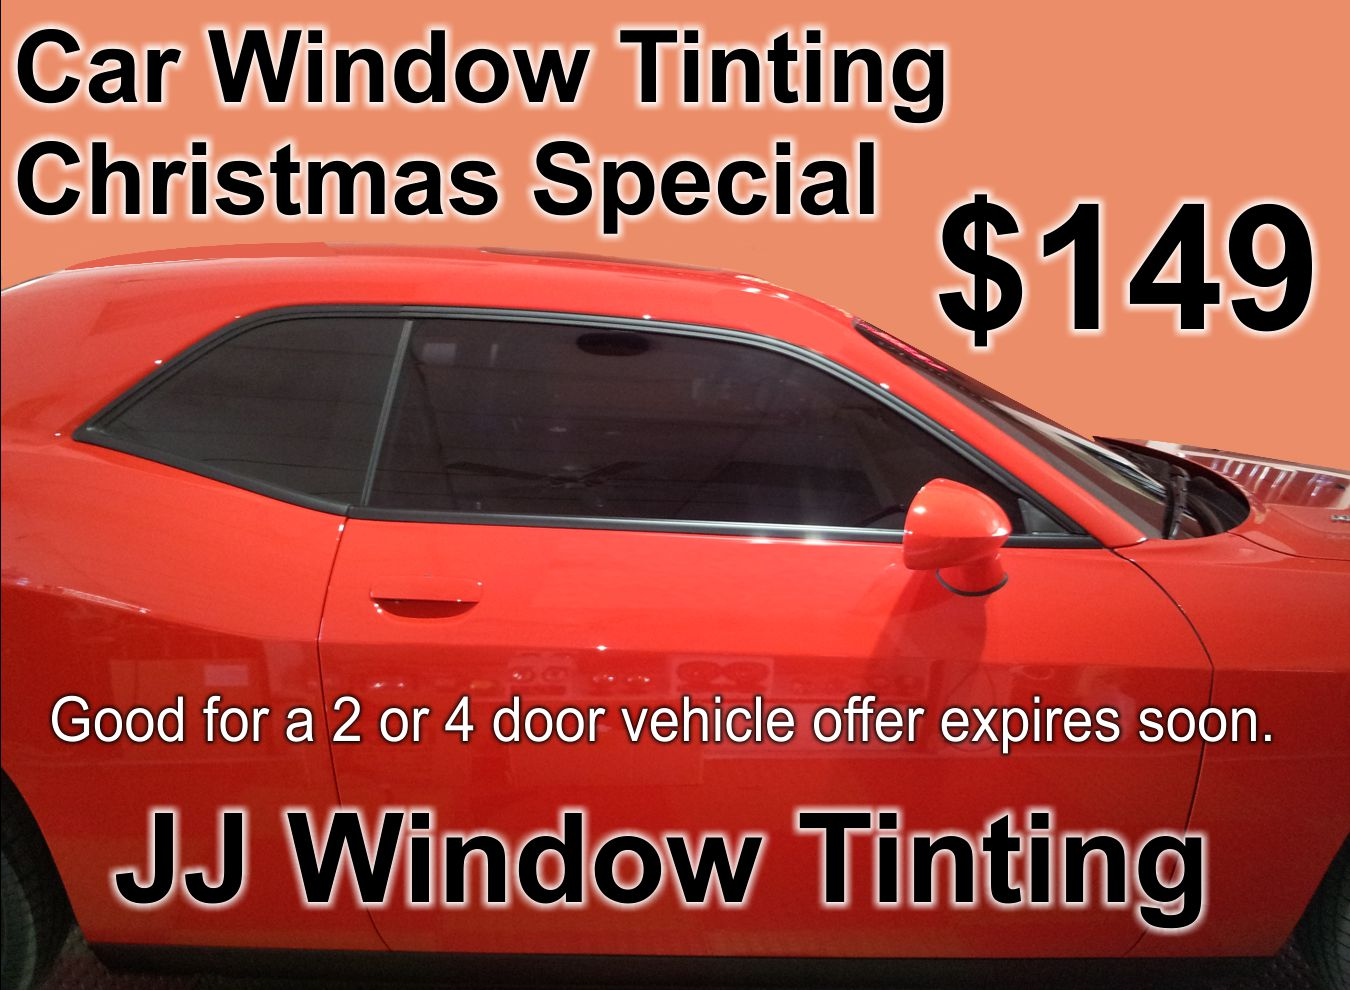 Car Window Tinting Christmas Special. JJ Window Tinting.